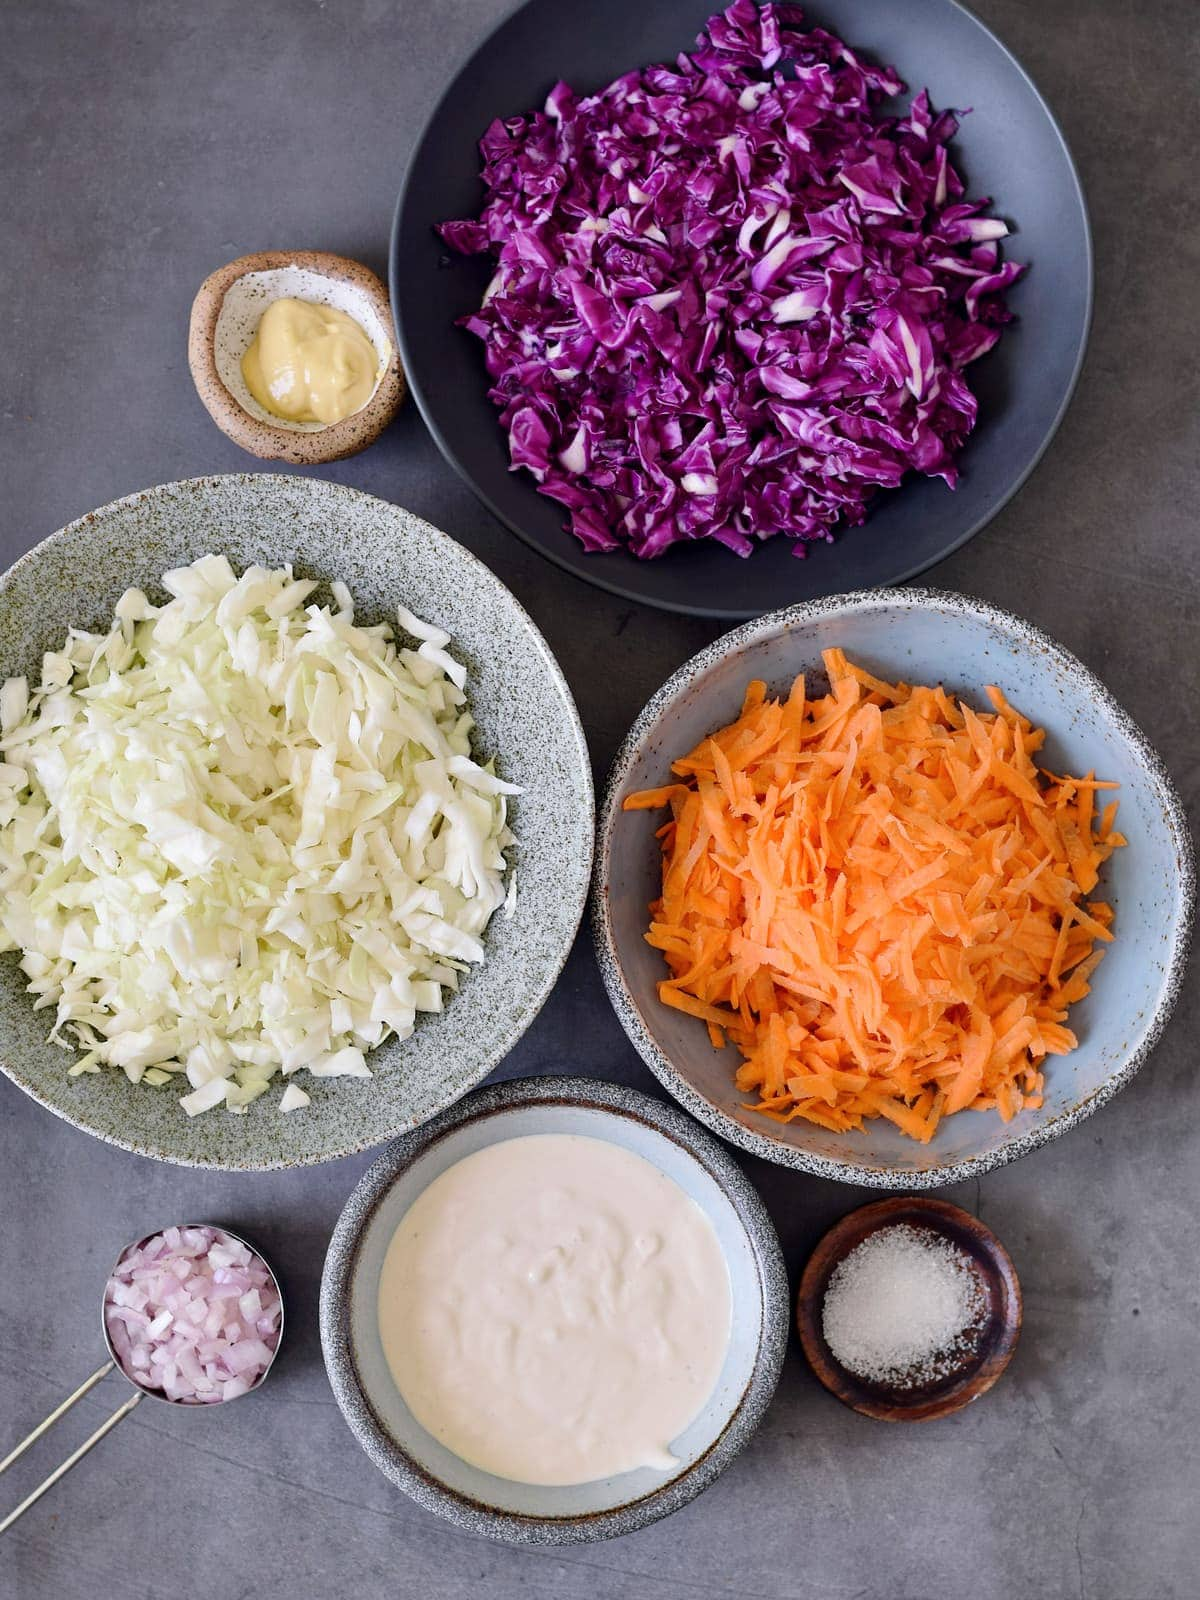 cabbage, vegan sour cream, and shredded carrots on a gray backdrop